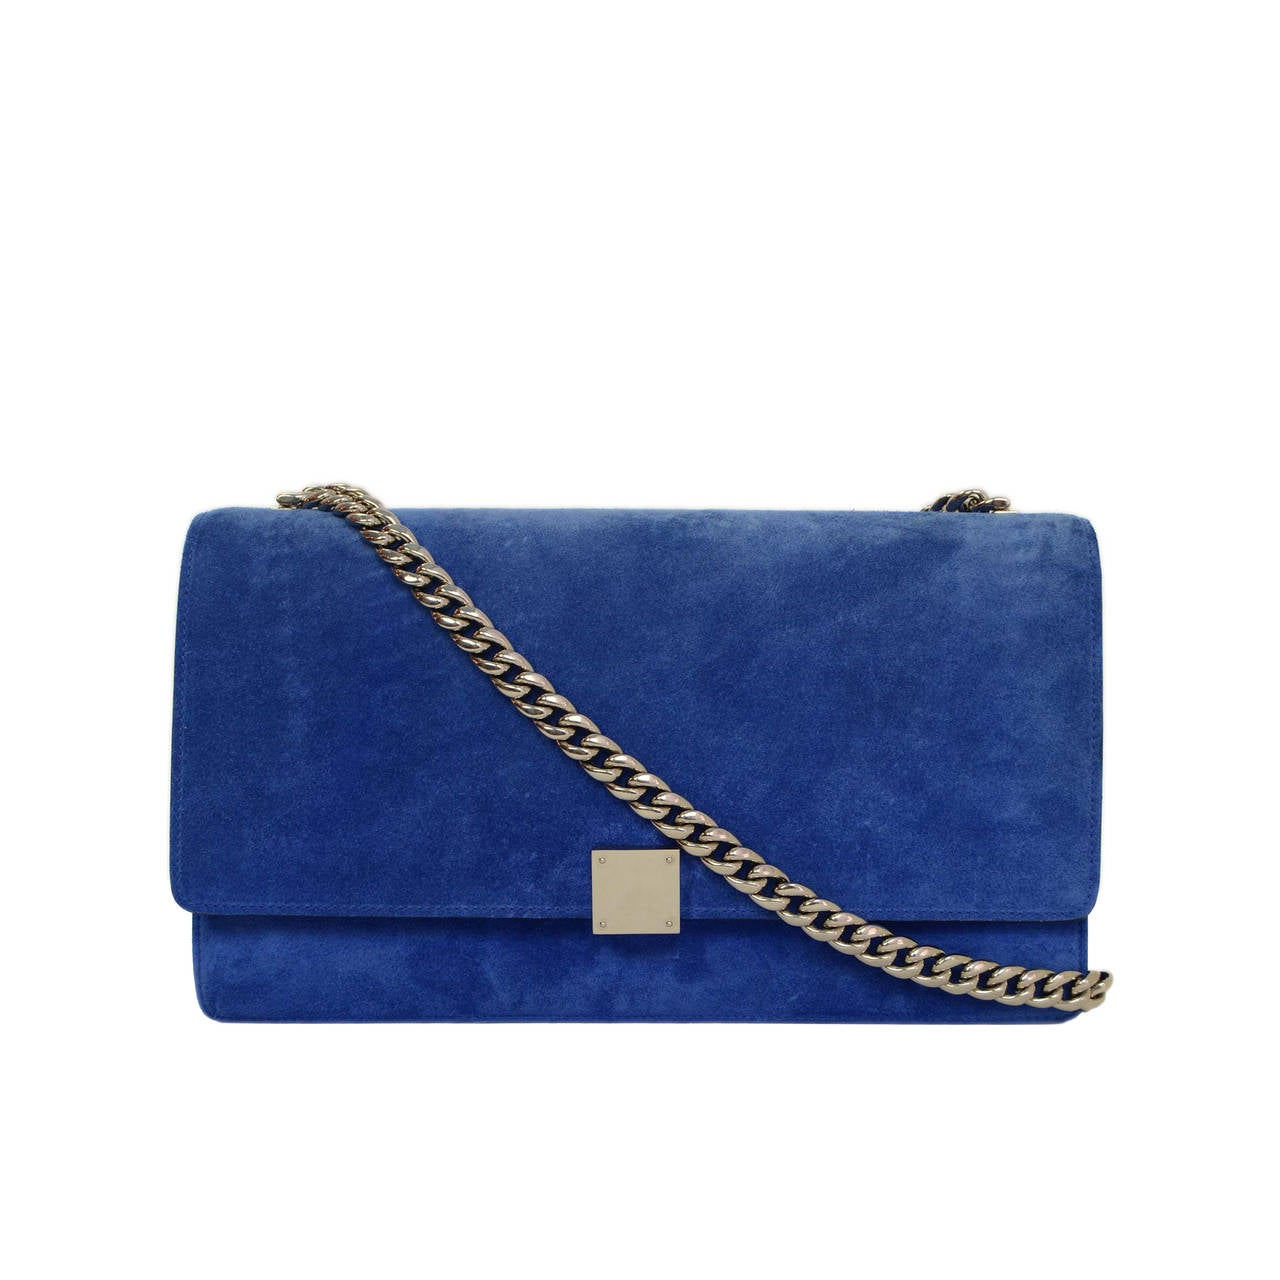 CELINE Cobalt Blue Suede Medium Case Flap Bag SHW